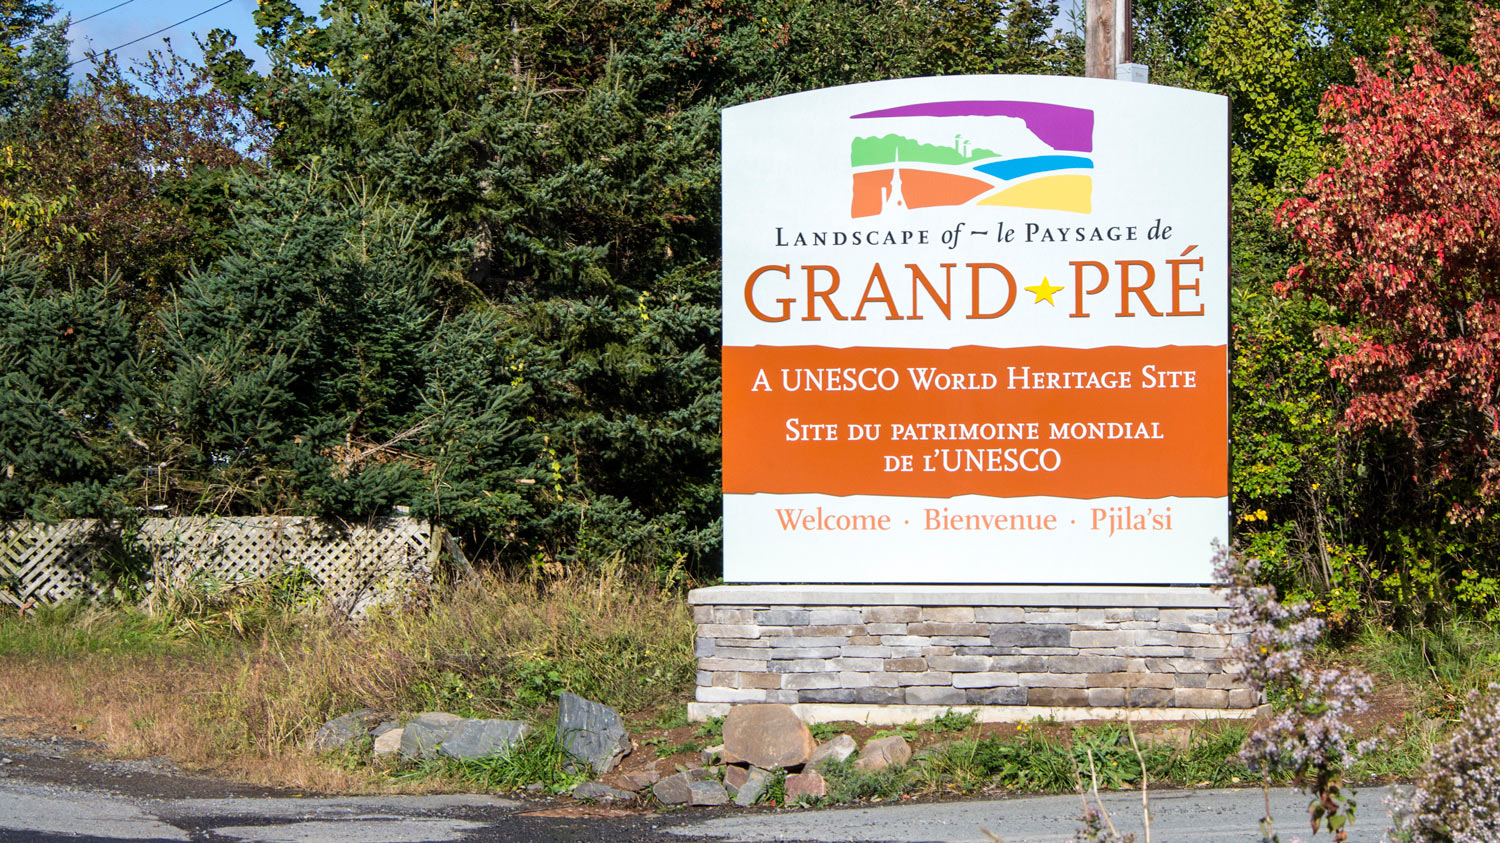 UNESCO WORLD HERITAGE SITE GATEWAY SIGN Vehicular gateway signs signal arrival, and welcome visitors to the site.